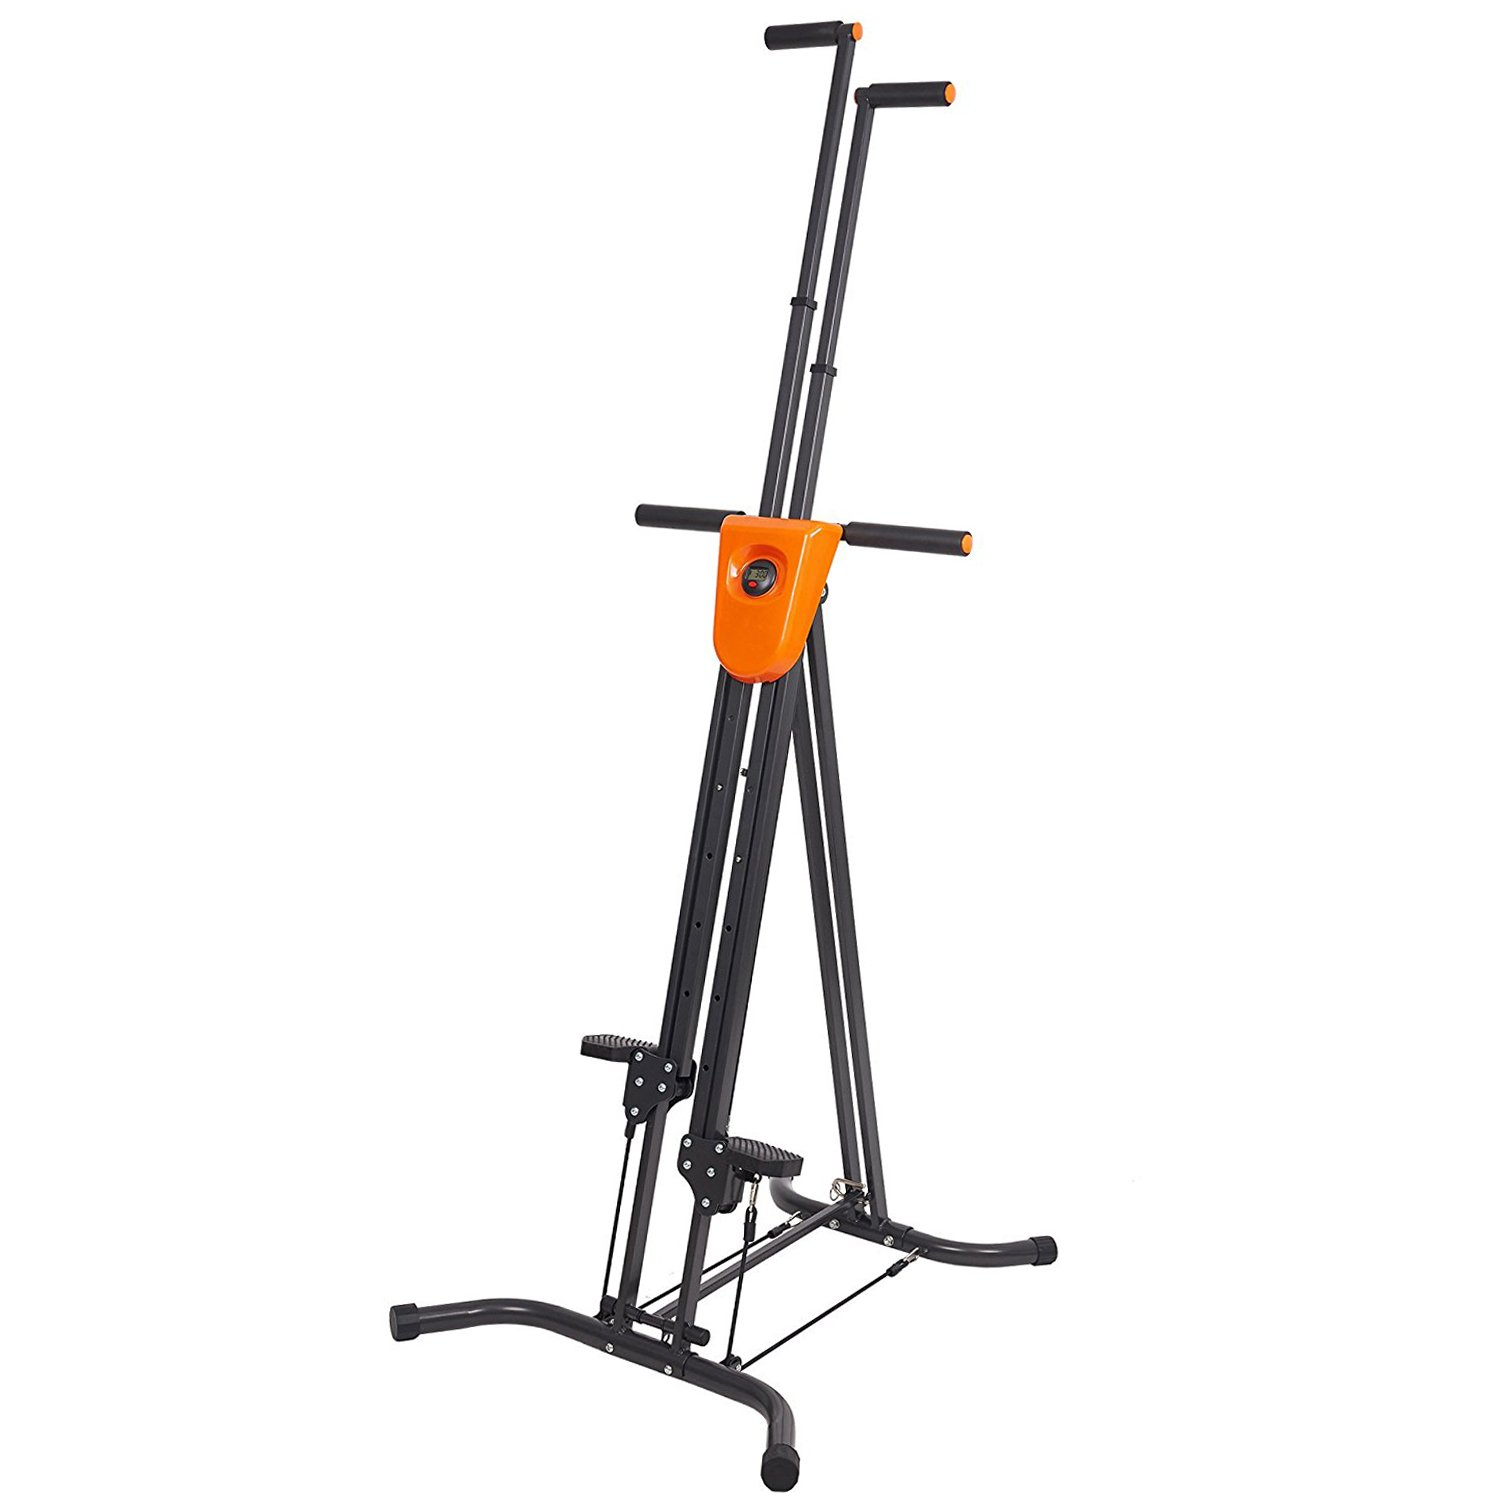 KARMAS PRODUCT Step Machine Climbing Vertical Climber Fitness with Digital Display